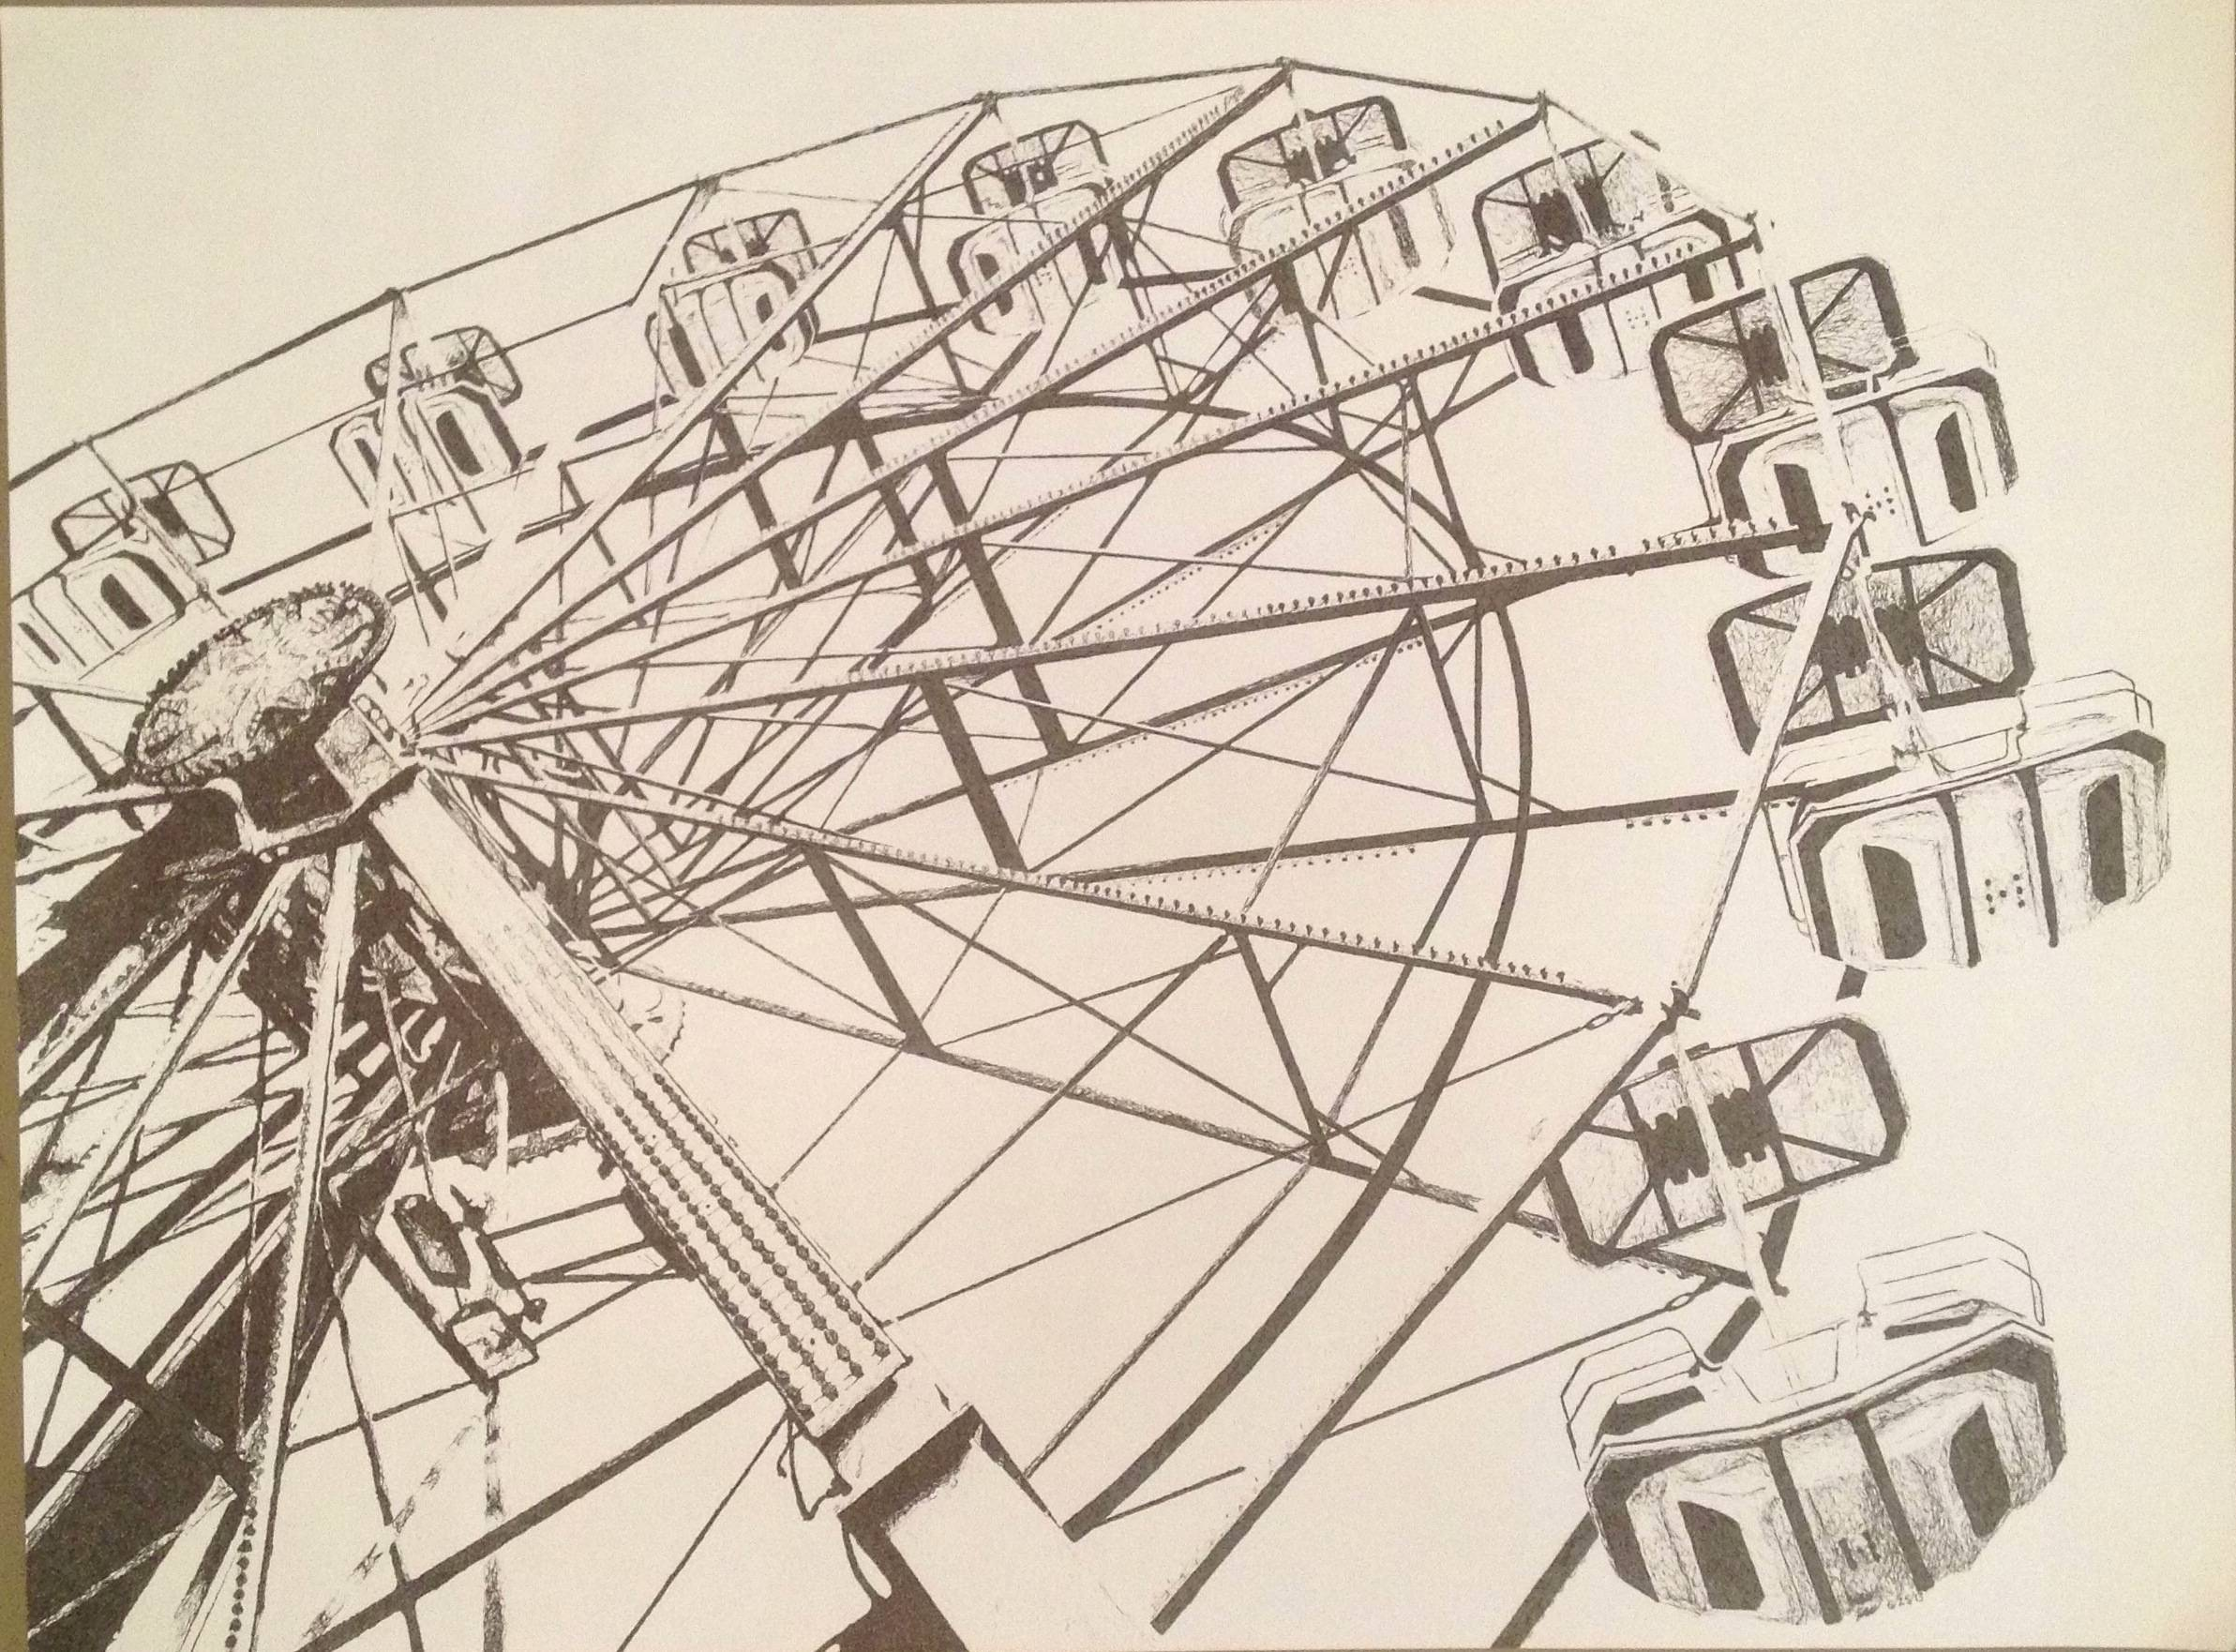 Drawn ferris wheel 18 18 24 in Ferris